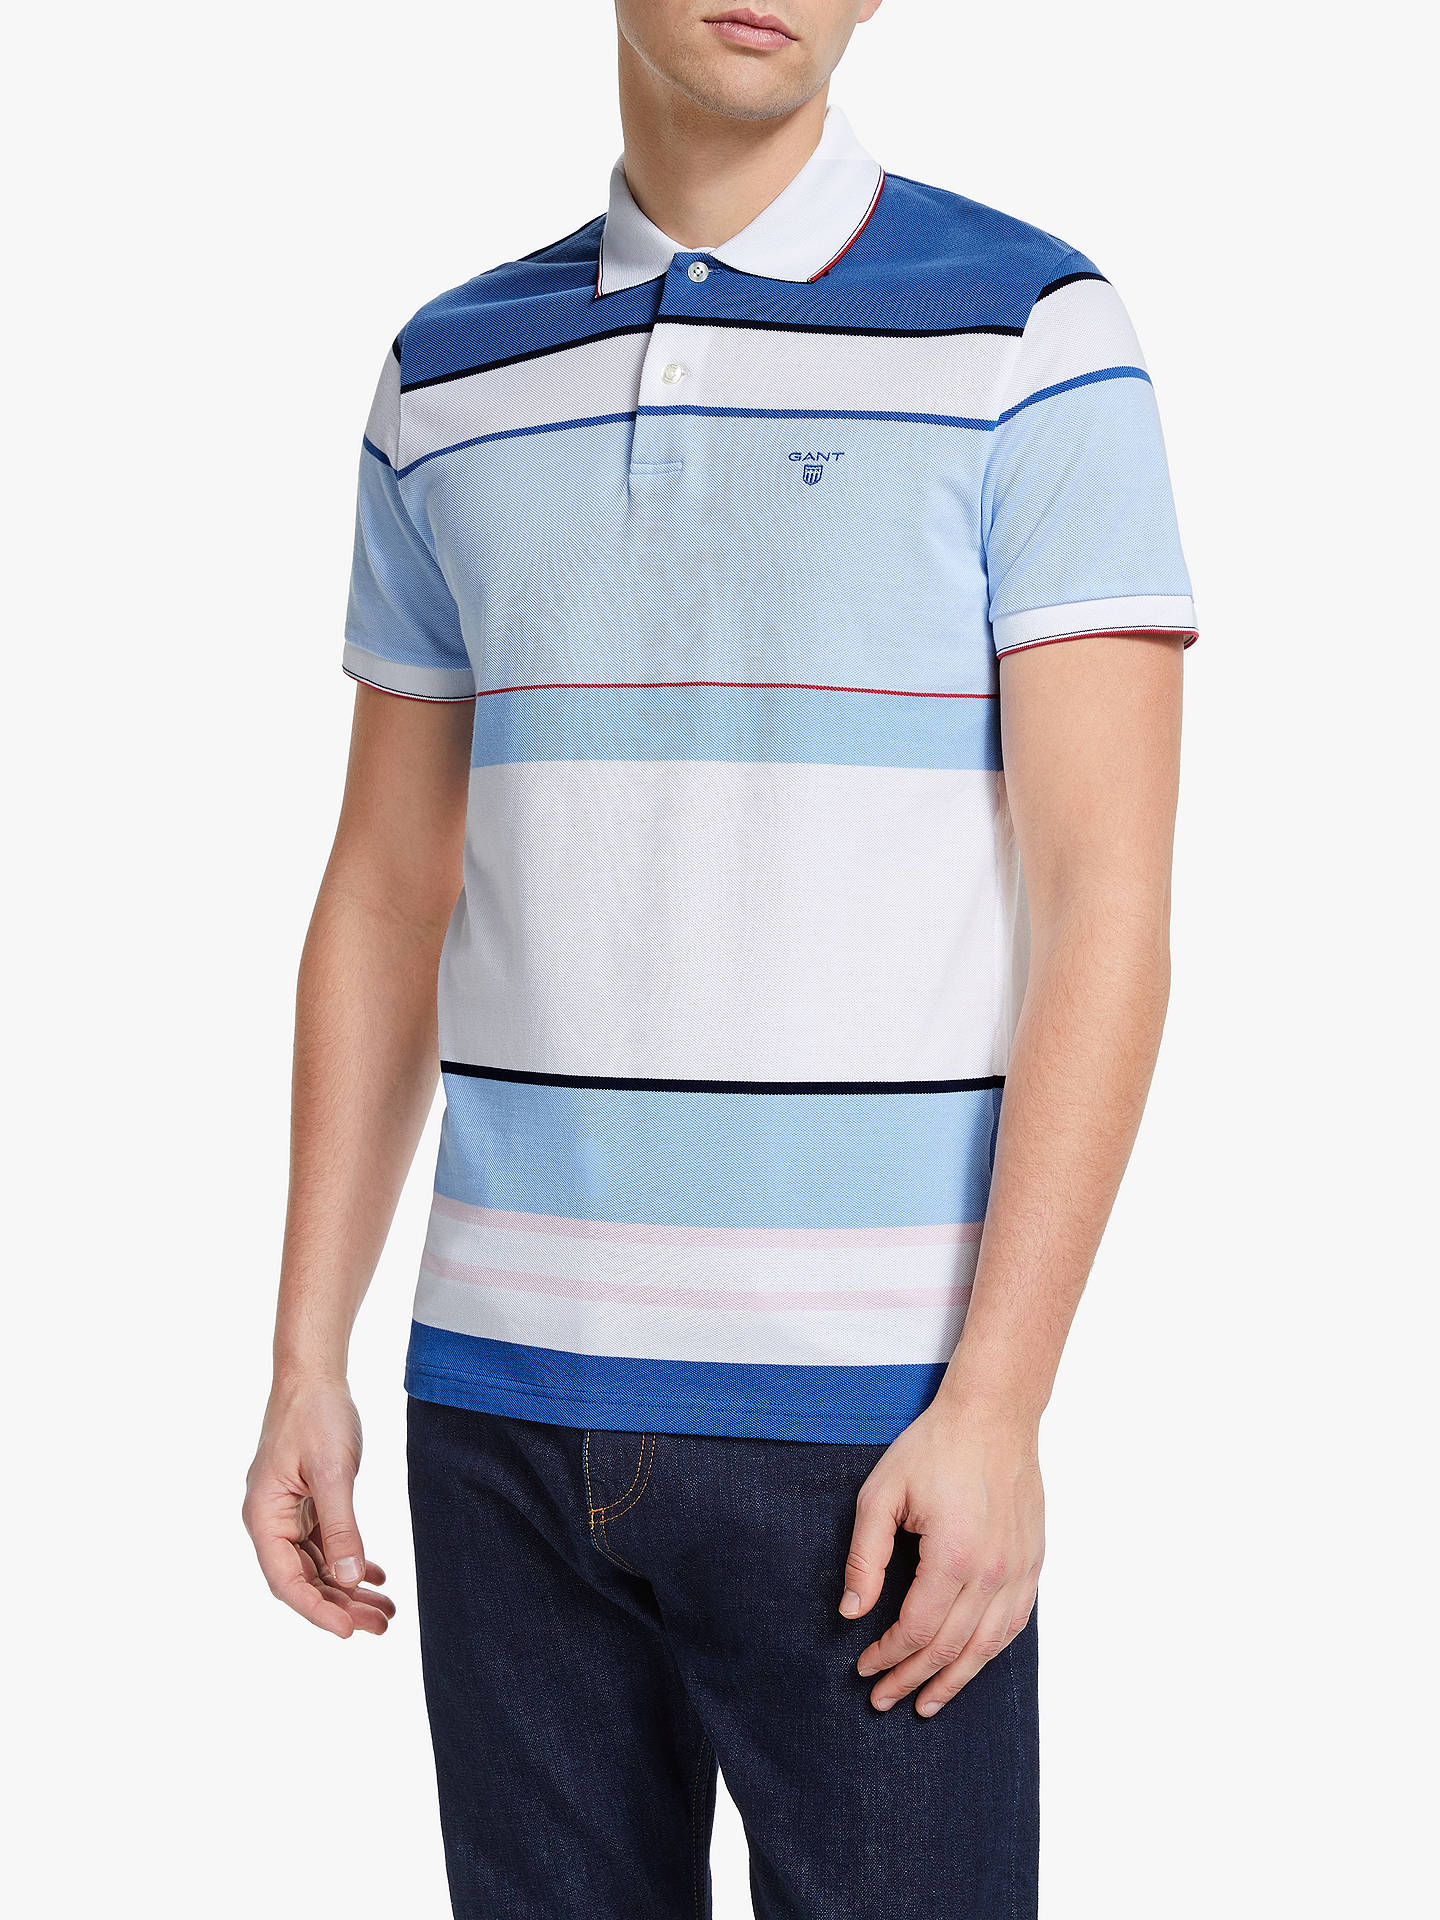 8d97178b1bf Buy GANT Contrast Colour Block Polo Shirt, Blue, L Online at johnlewis.com  ...